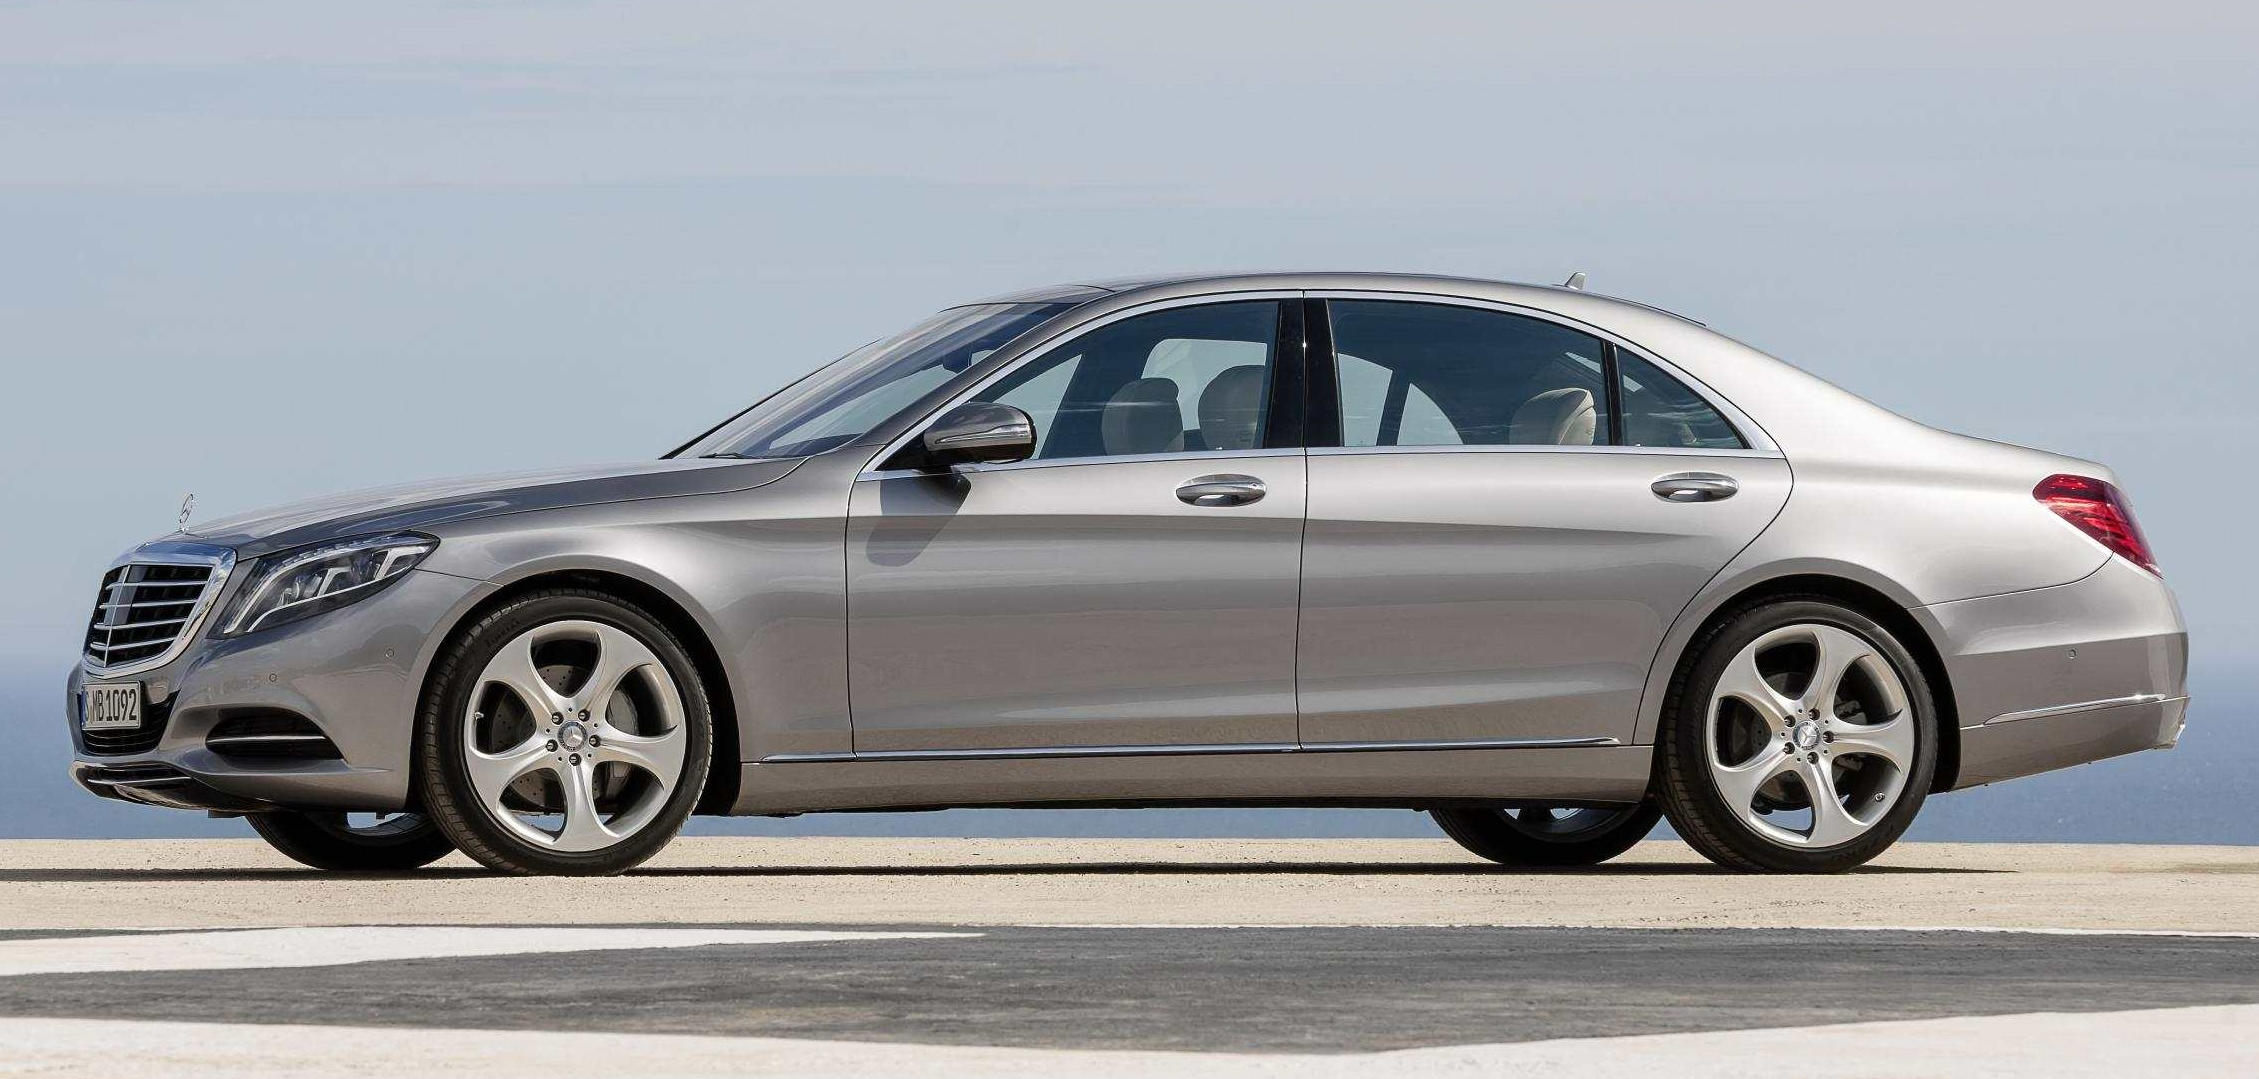 Mercedes benz s400 hybrid 2014 new car review for Mercedes benz hybrid cars